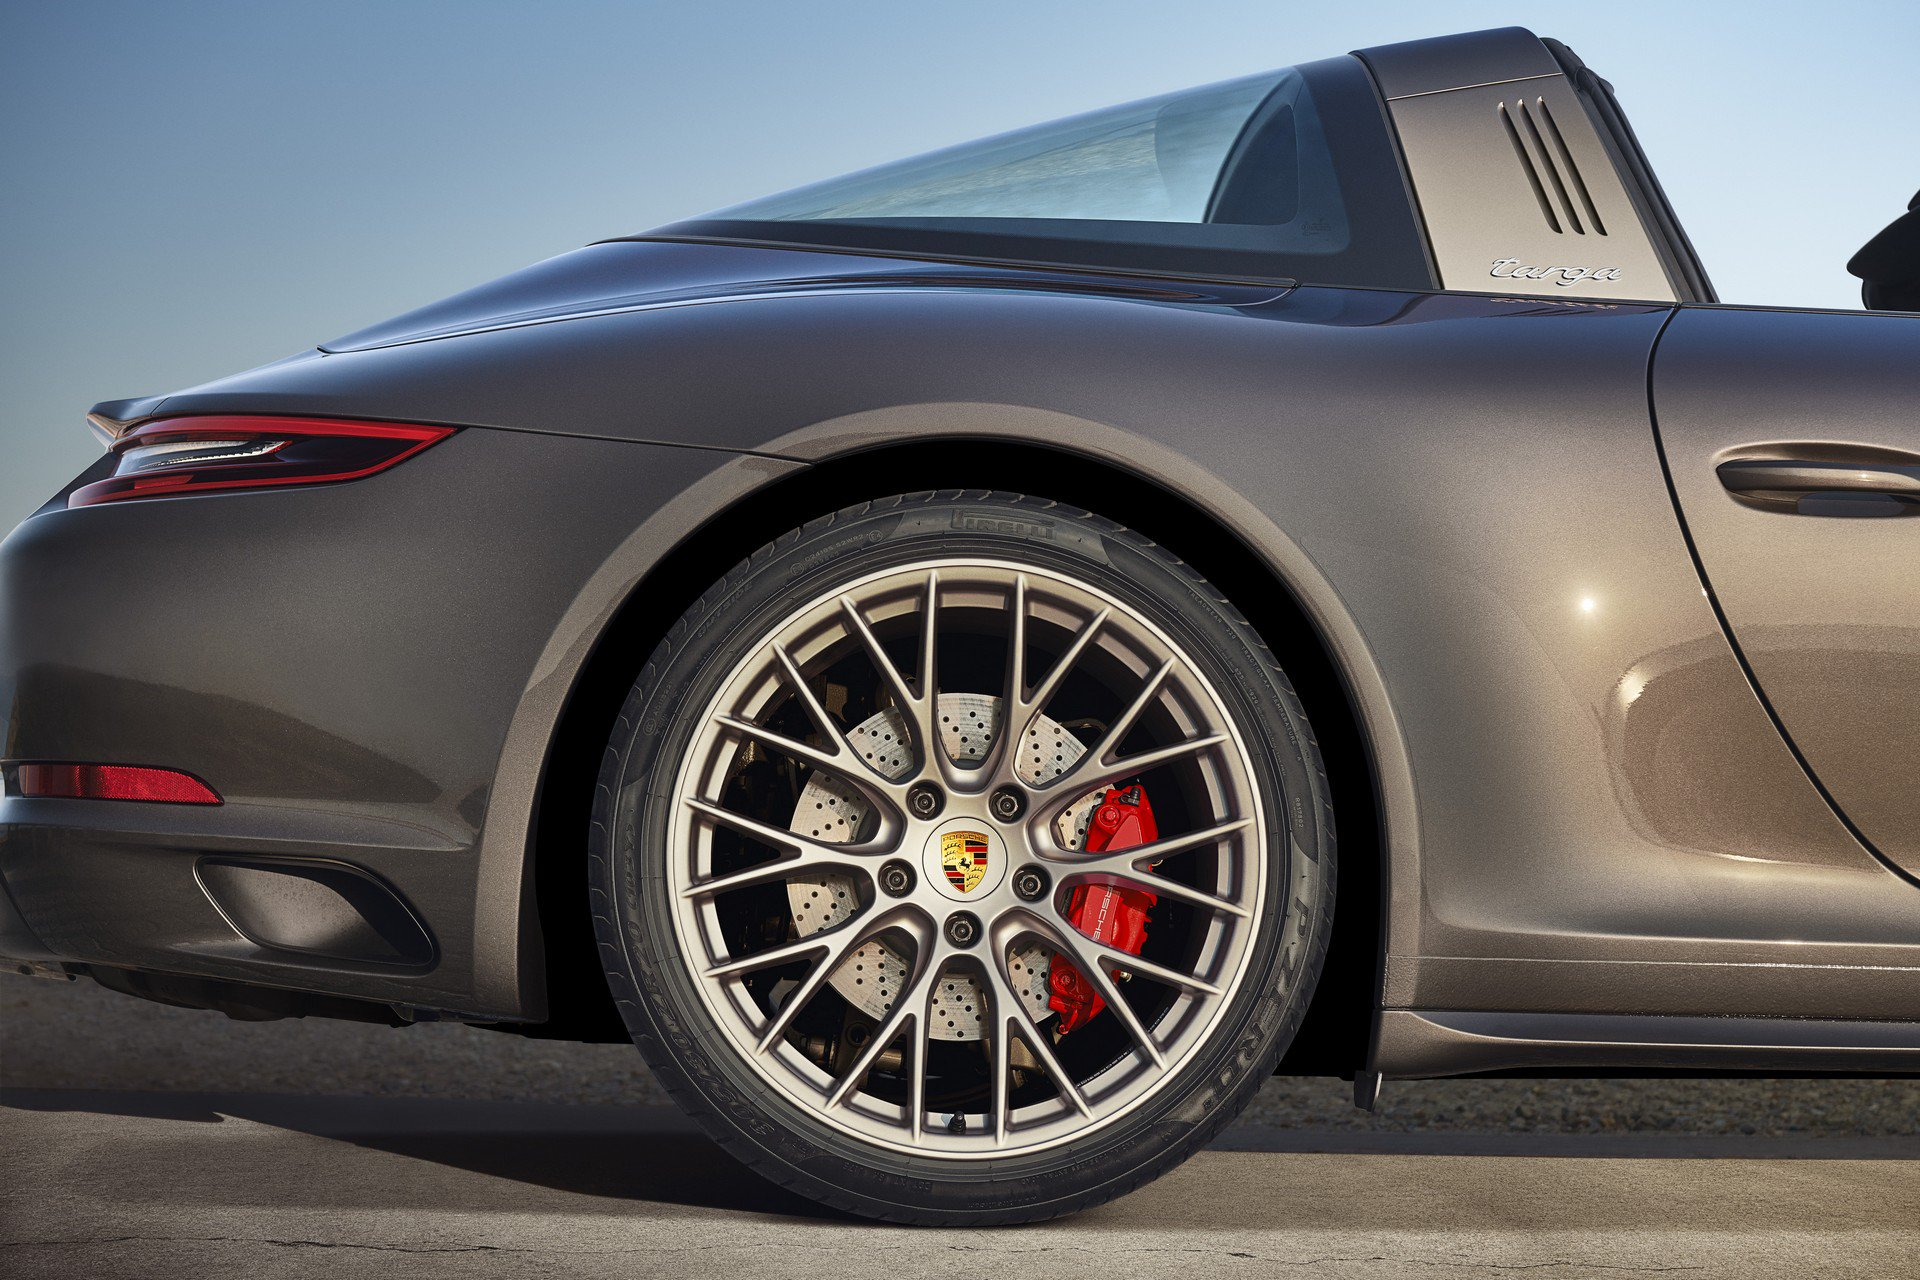 Porsche 911 Targa 4 GTS Exclusive Manufaktur Edition (8)